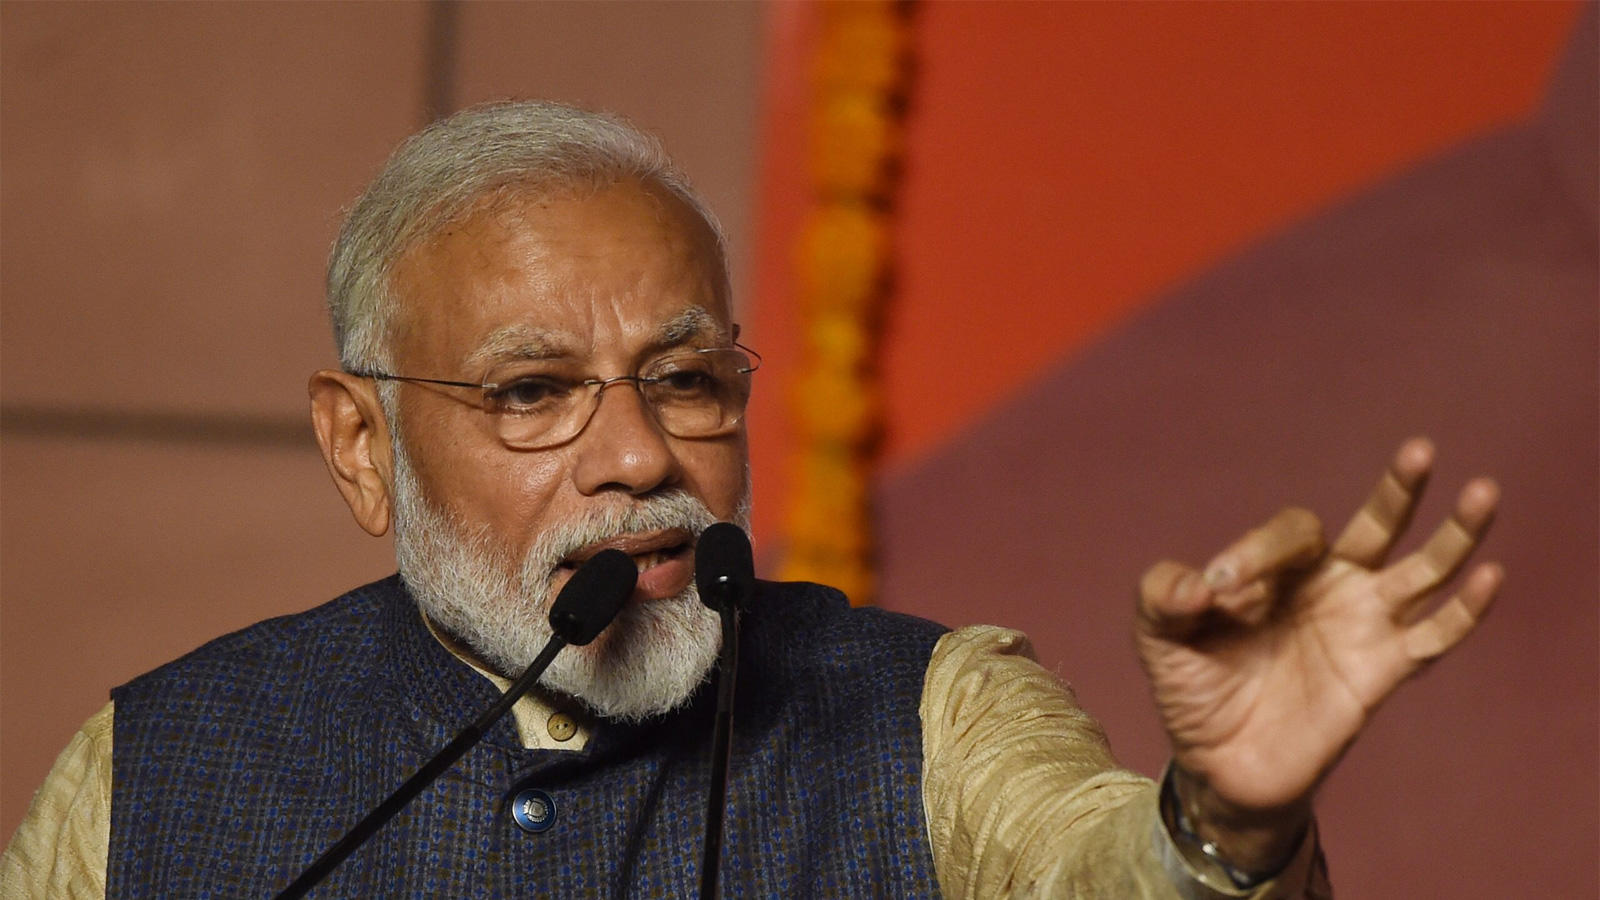 election-results-in-the-coming-days-i-wont-do-anything-with-ill-intention-pm-narendra-modi